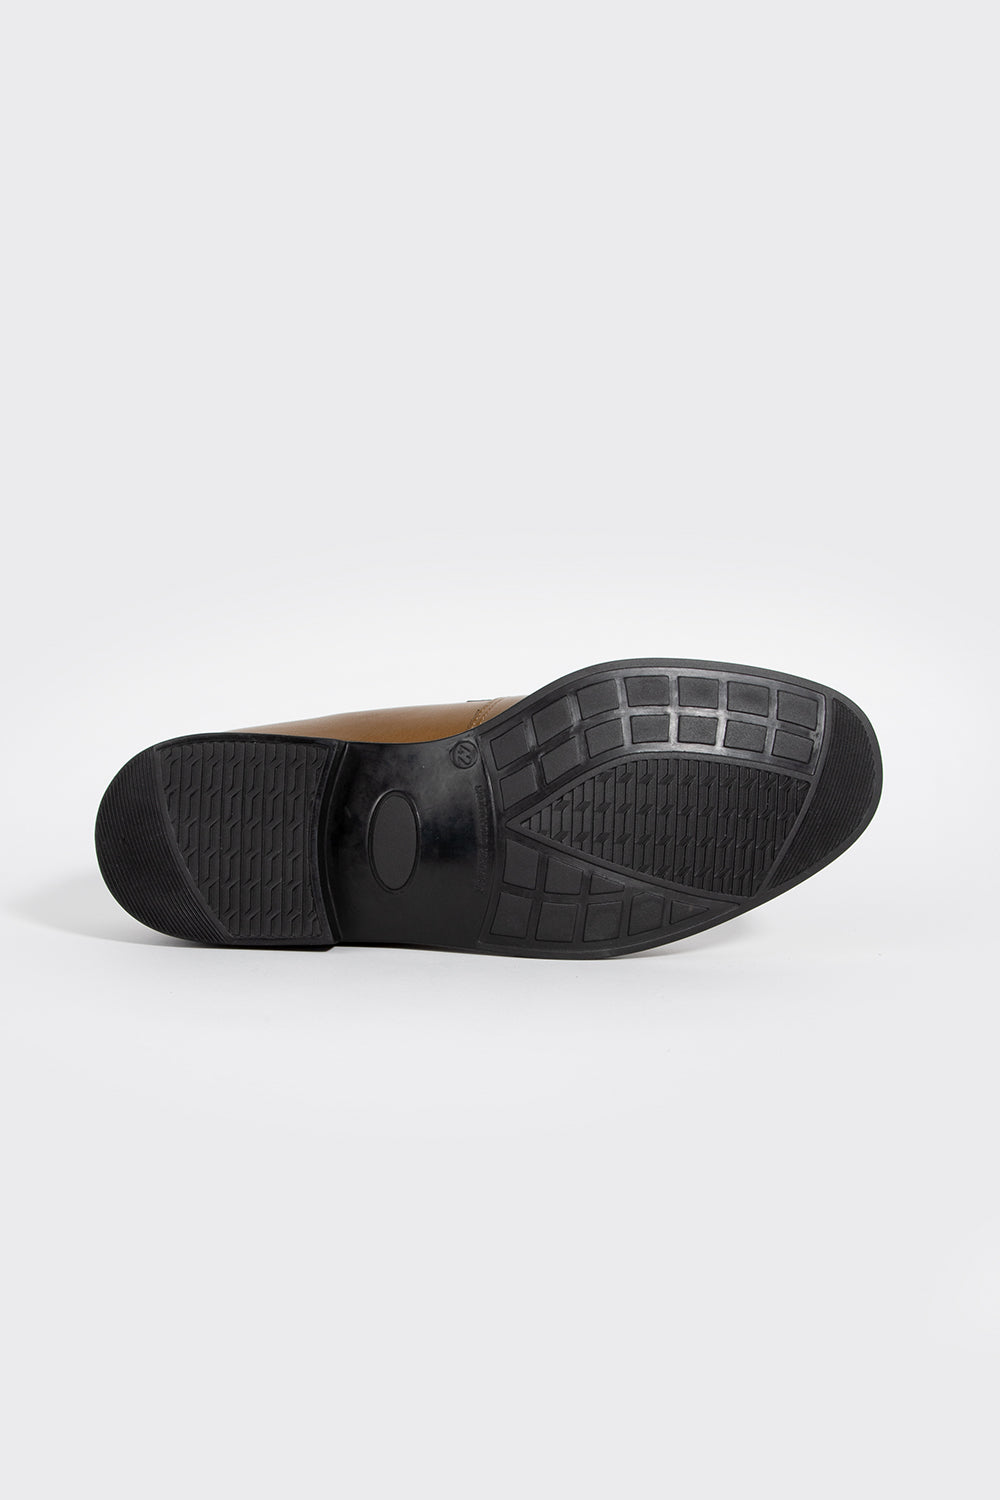 kleman dalior loafers black mens sizing womens sizing